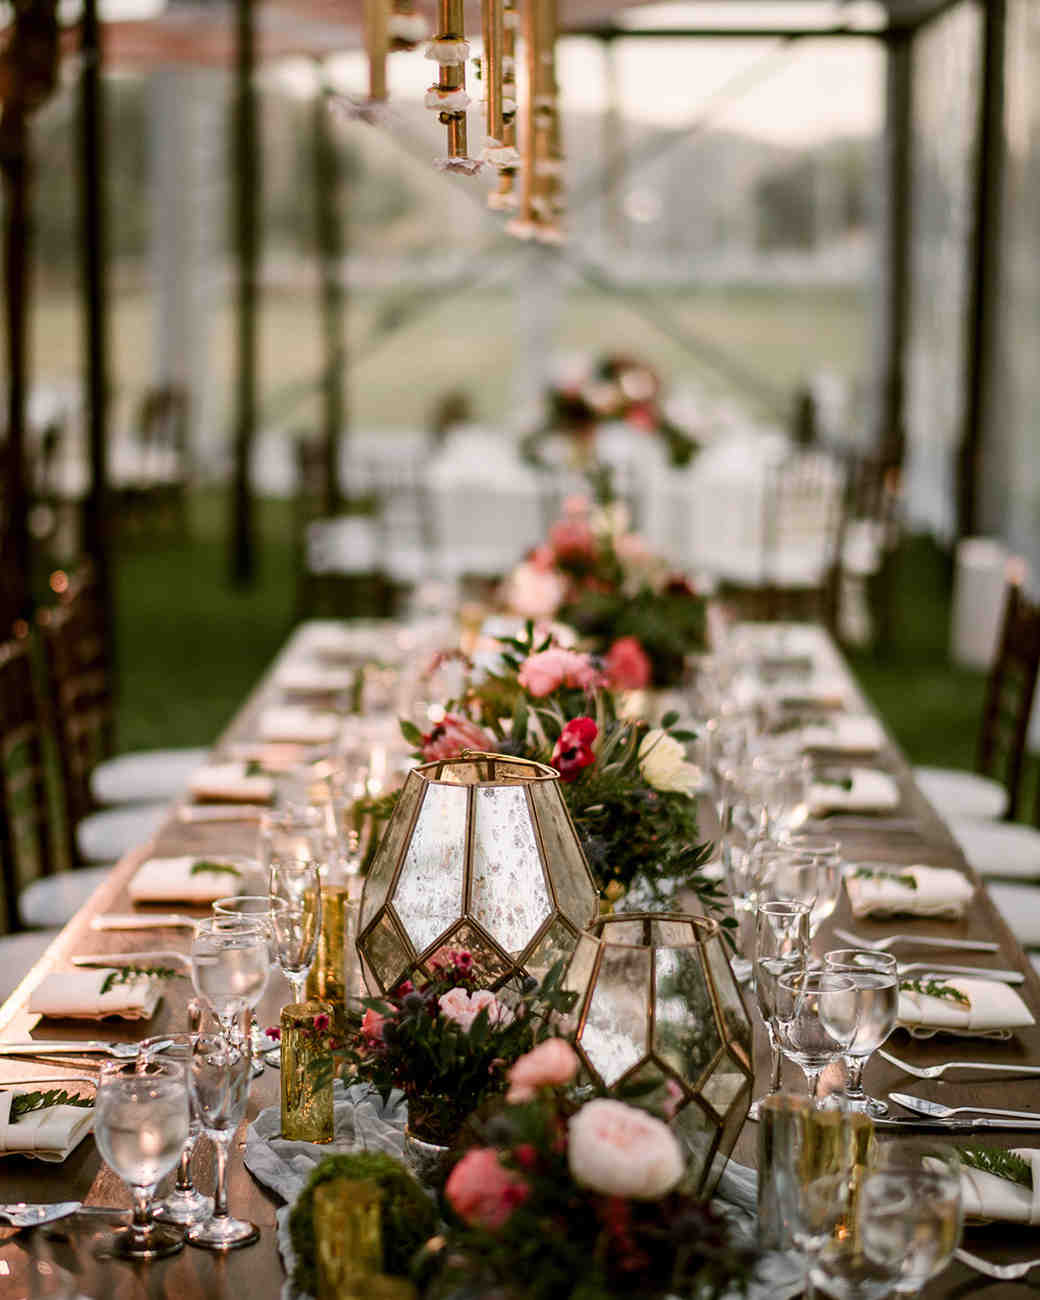 7 Barn Wedding Decoration Ideas For A Spring Wedding: 28 Of The Prettiest Rustic Wedding Centerpieces